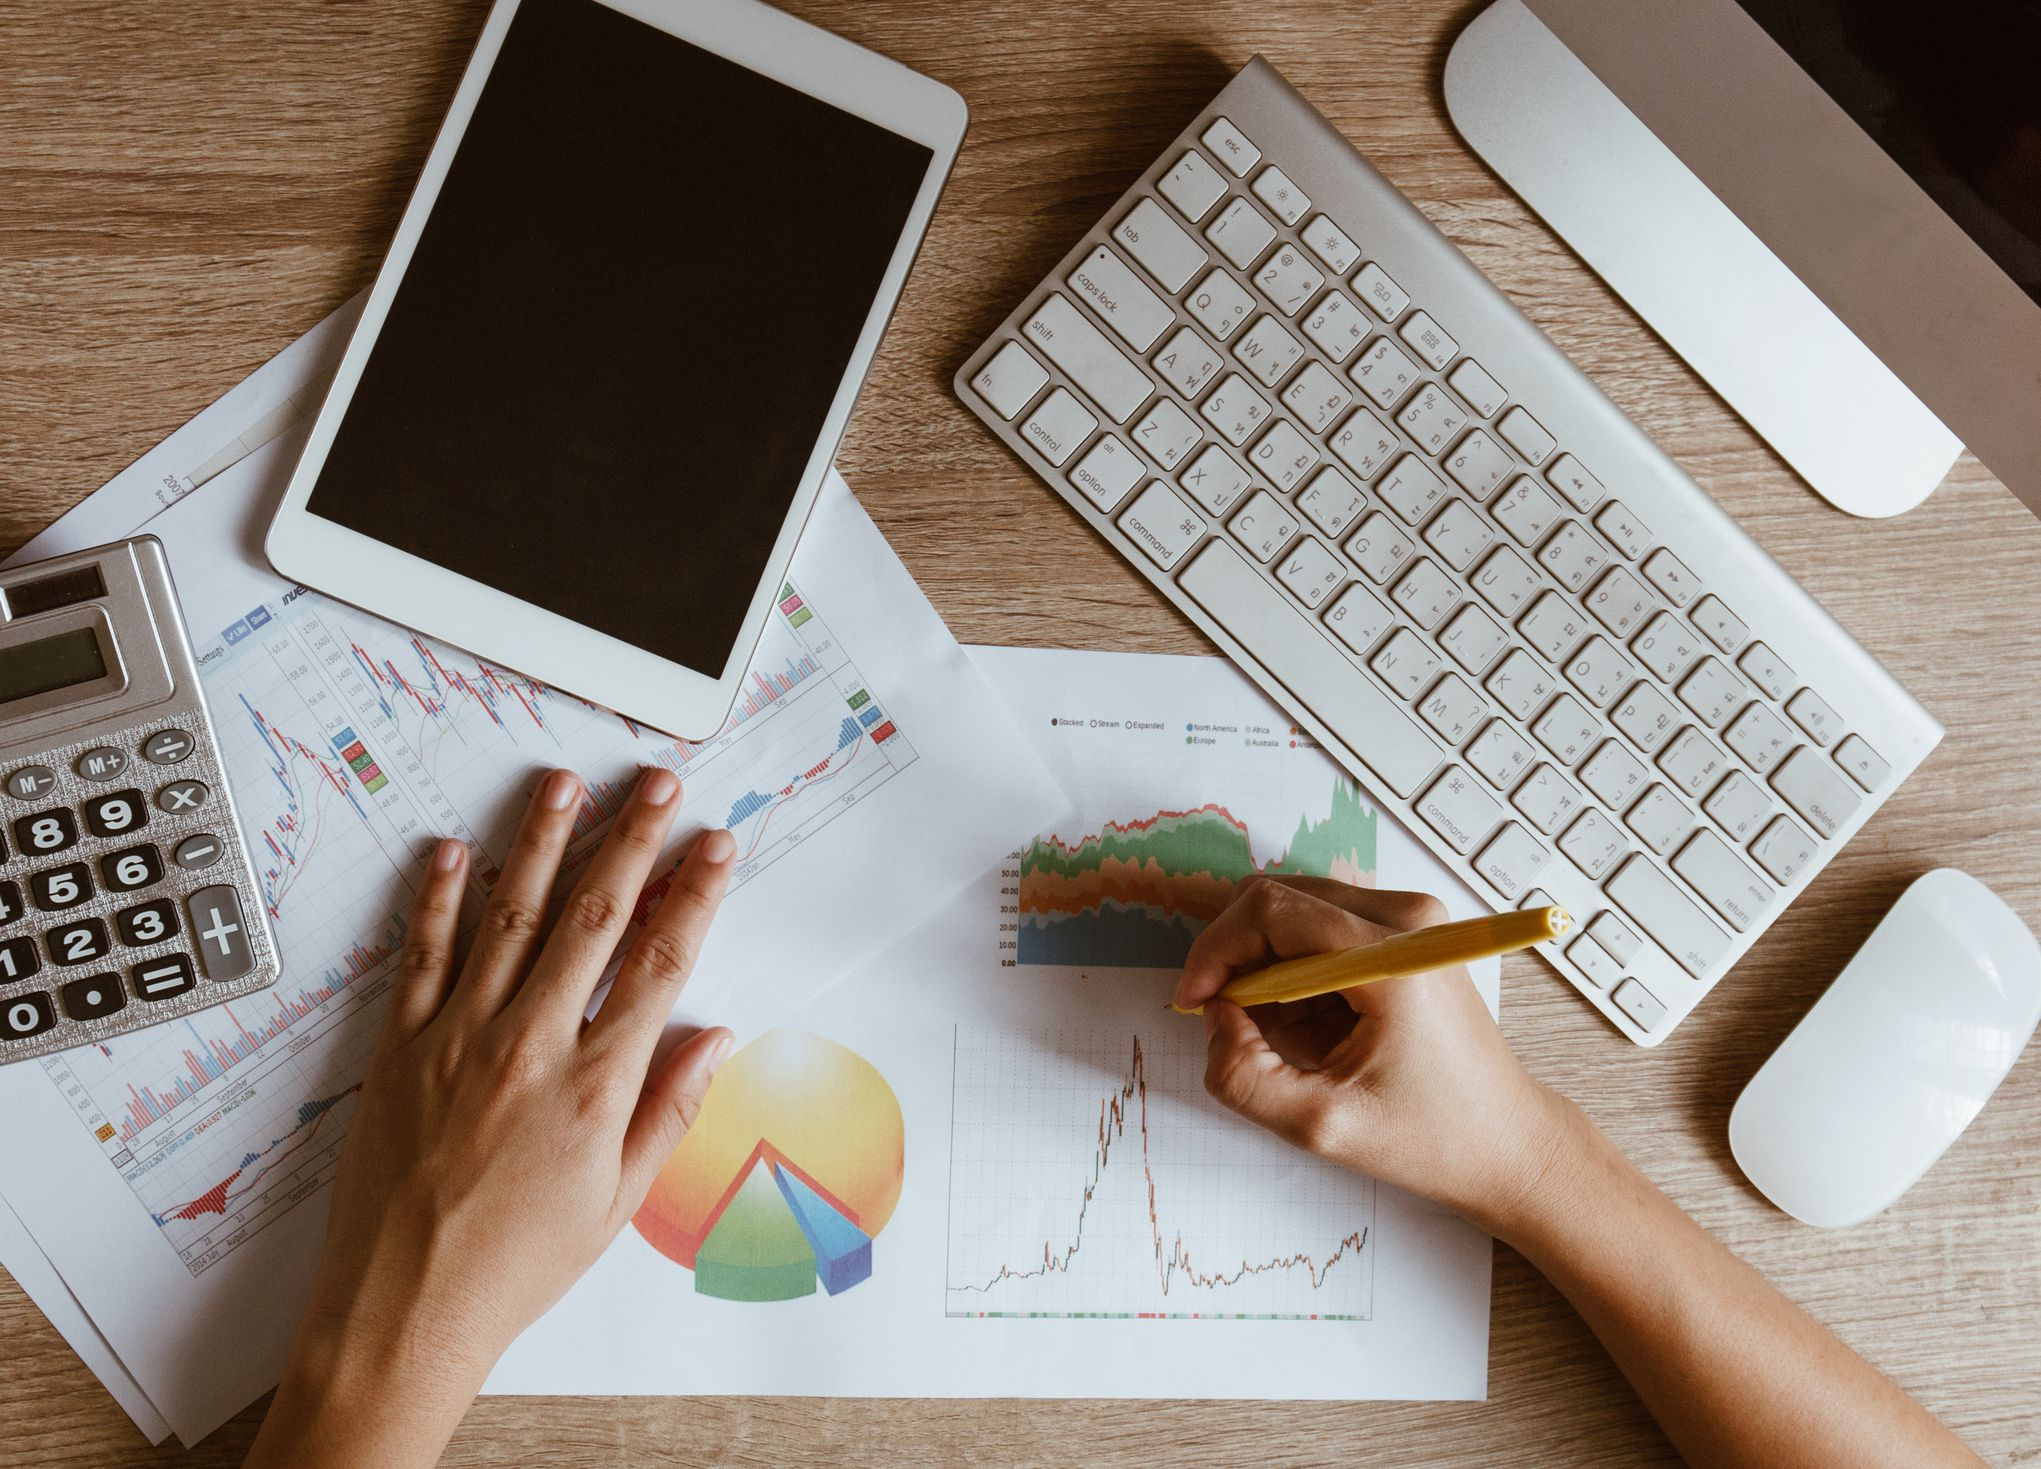 calculating the current ratio from a balance sheet